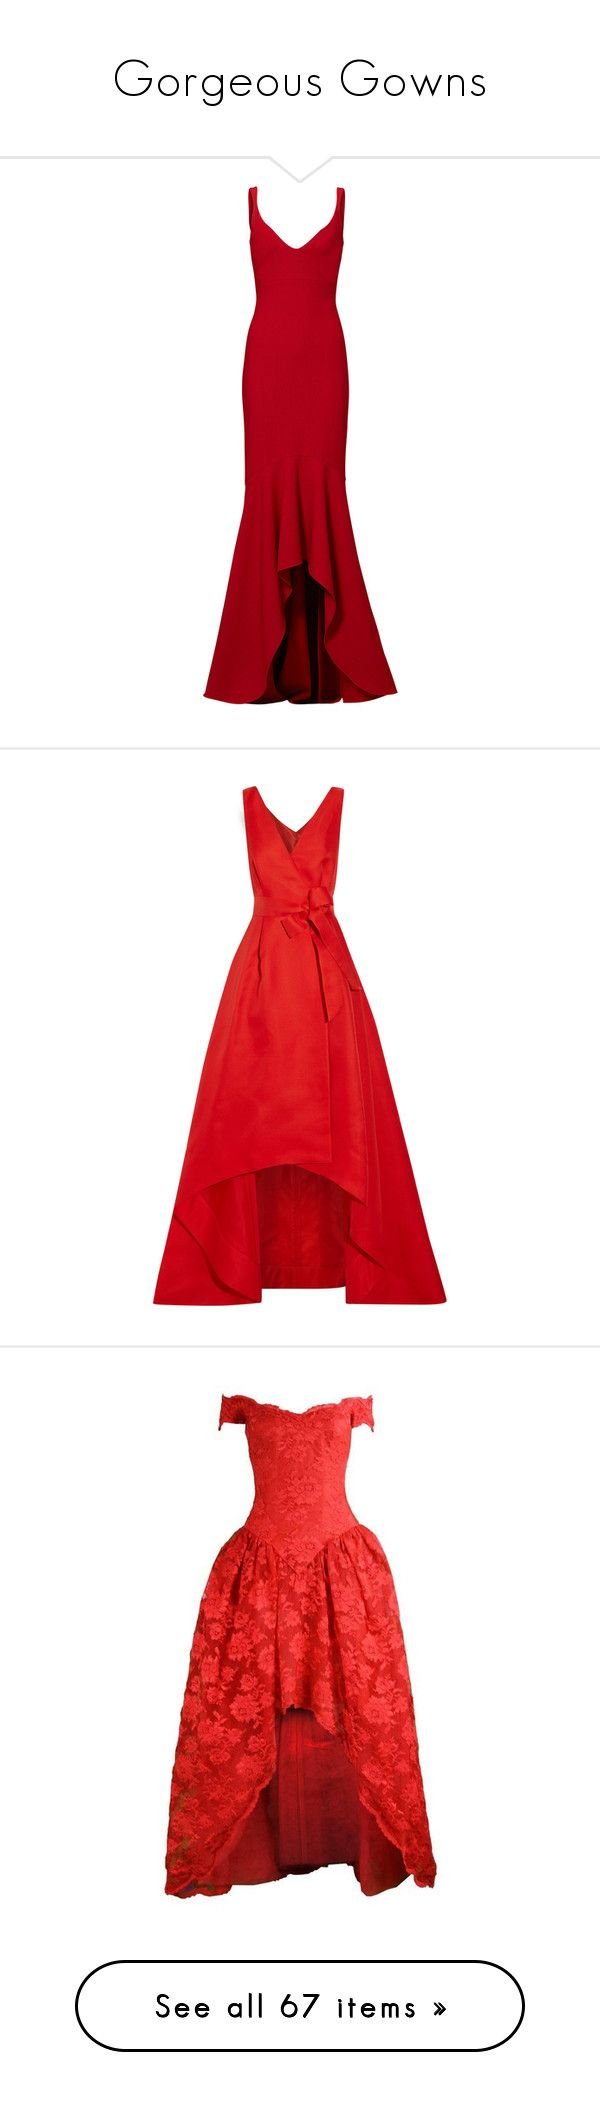 """Gorgeous Gowns"" by anniebenny ❤ liked on Polyvore featuring Gowns, dresses, gowns, long dresses, carmen marc valvo evening gowns, carmen marc valvo, carmen marc valvo dress, red ball gown, vestidos and red"